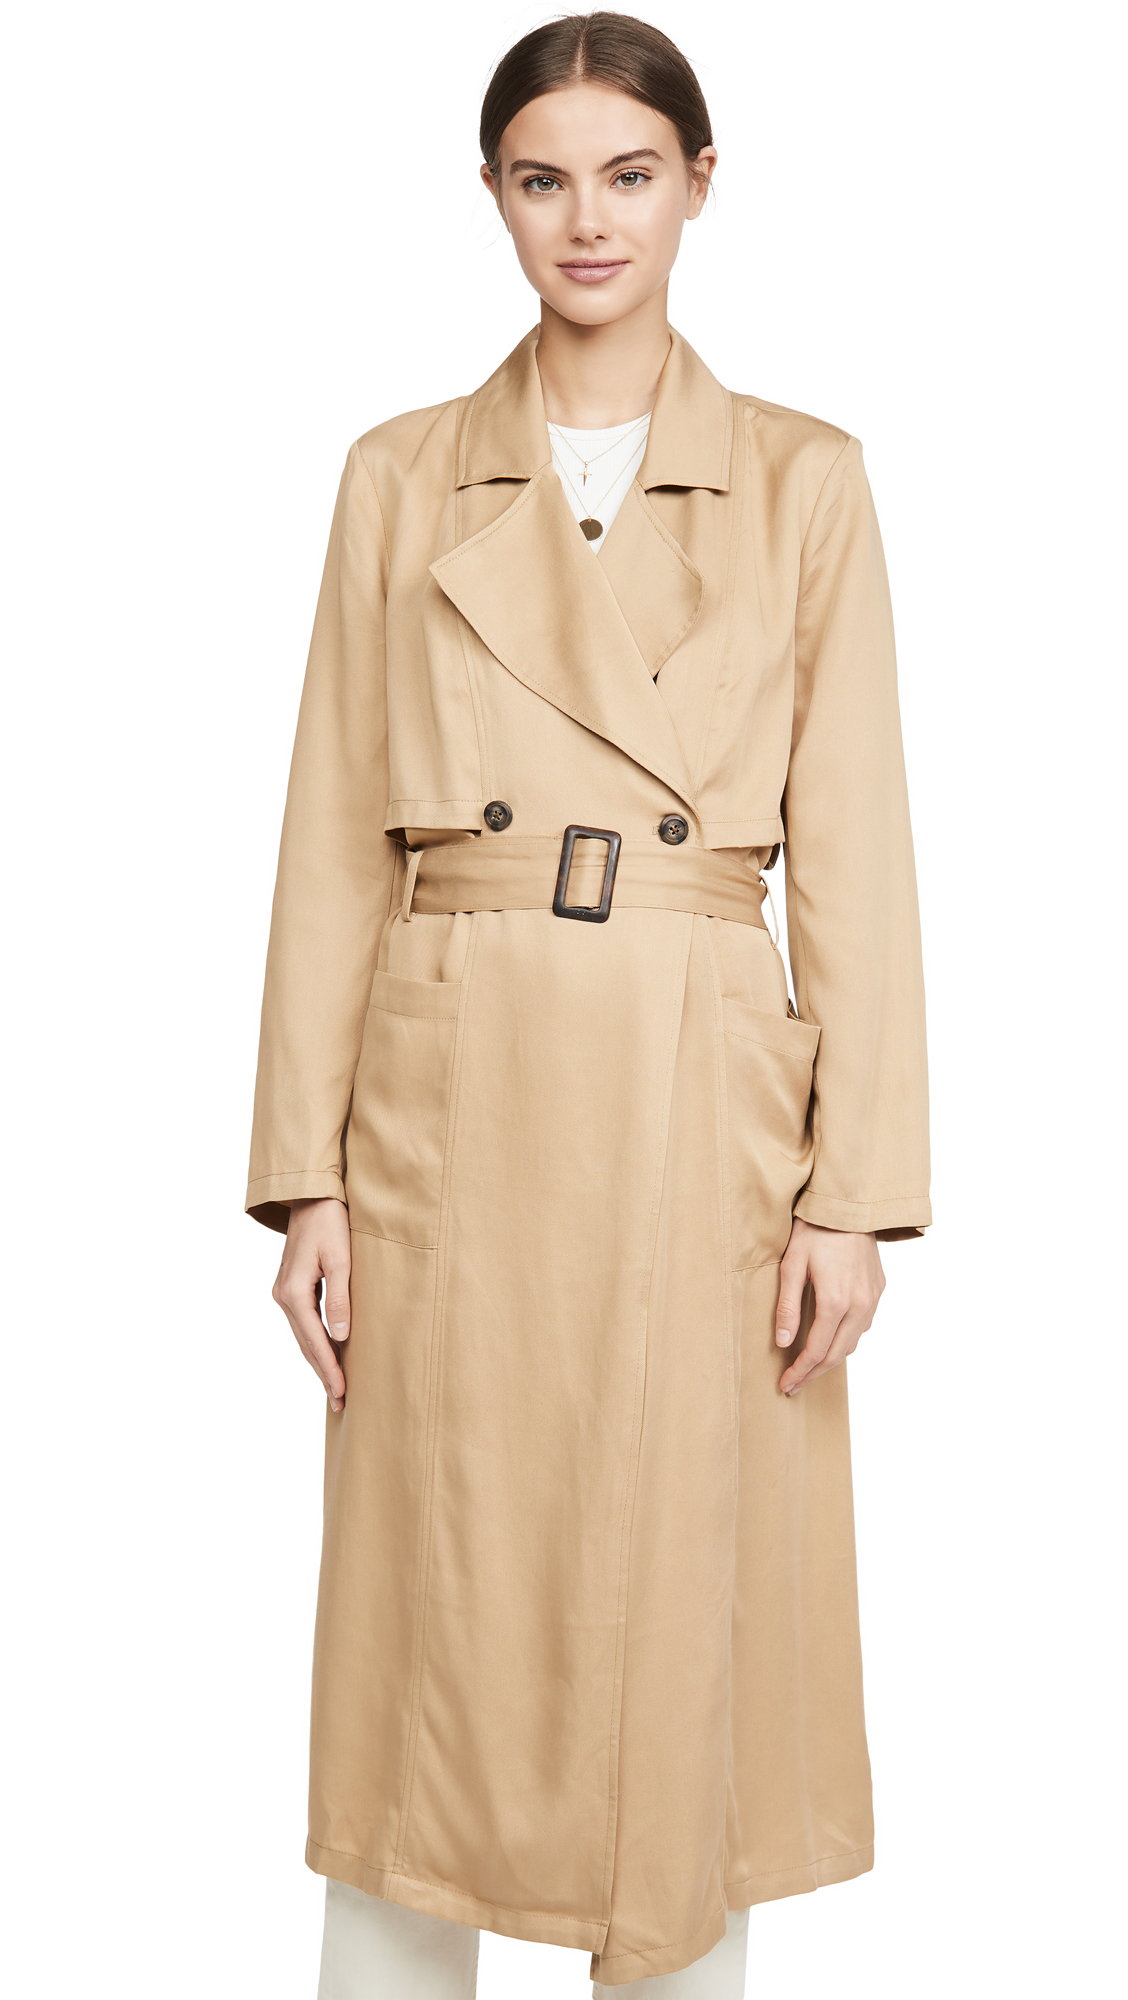 Buy cupcakes and cashmere Melody Jacket online beautiful cupcakes and cashmere Jackets, Coats, Trench Coats